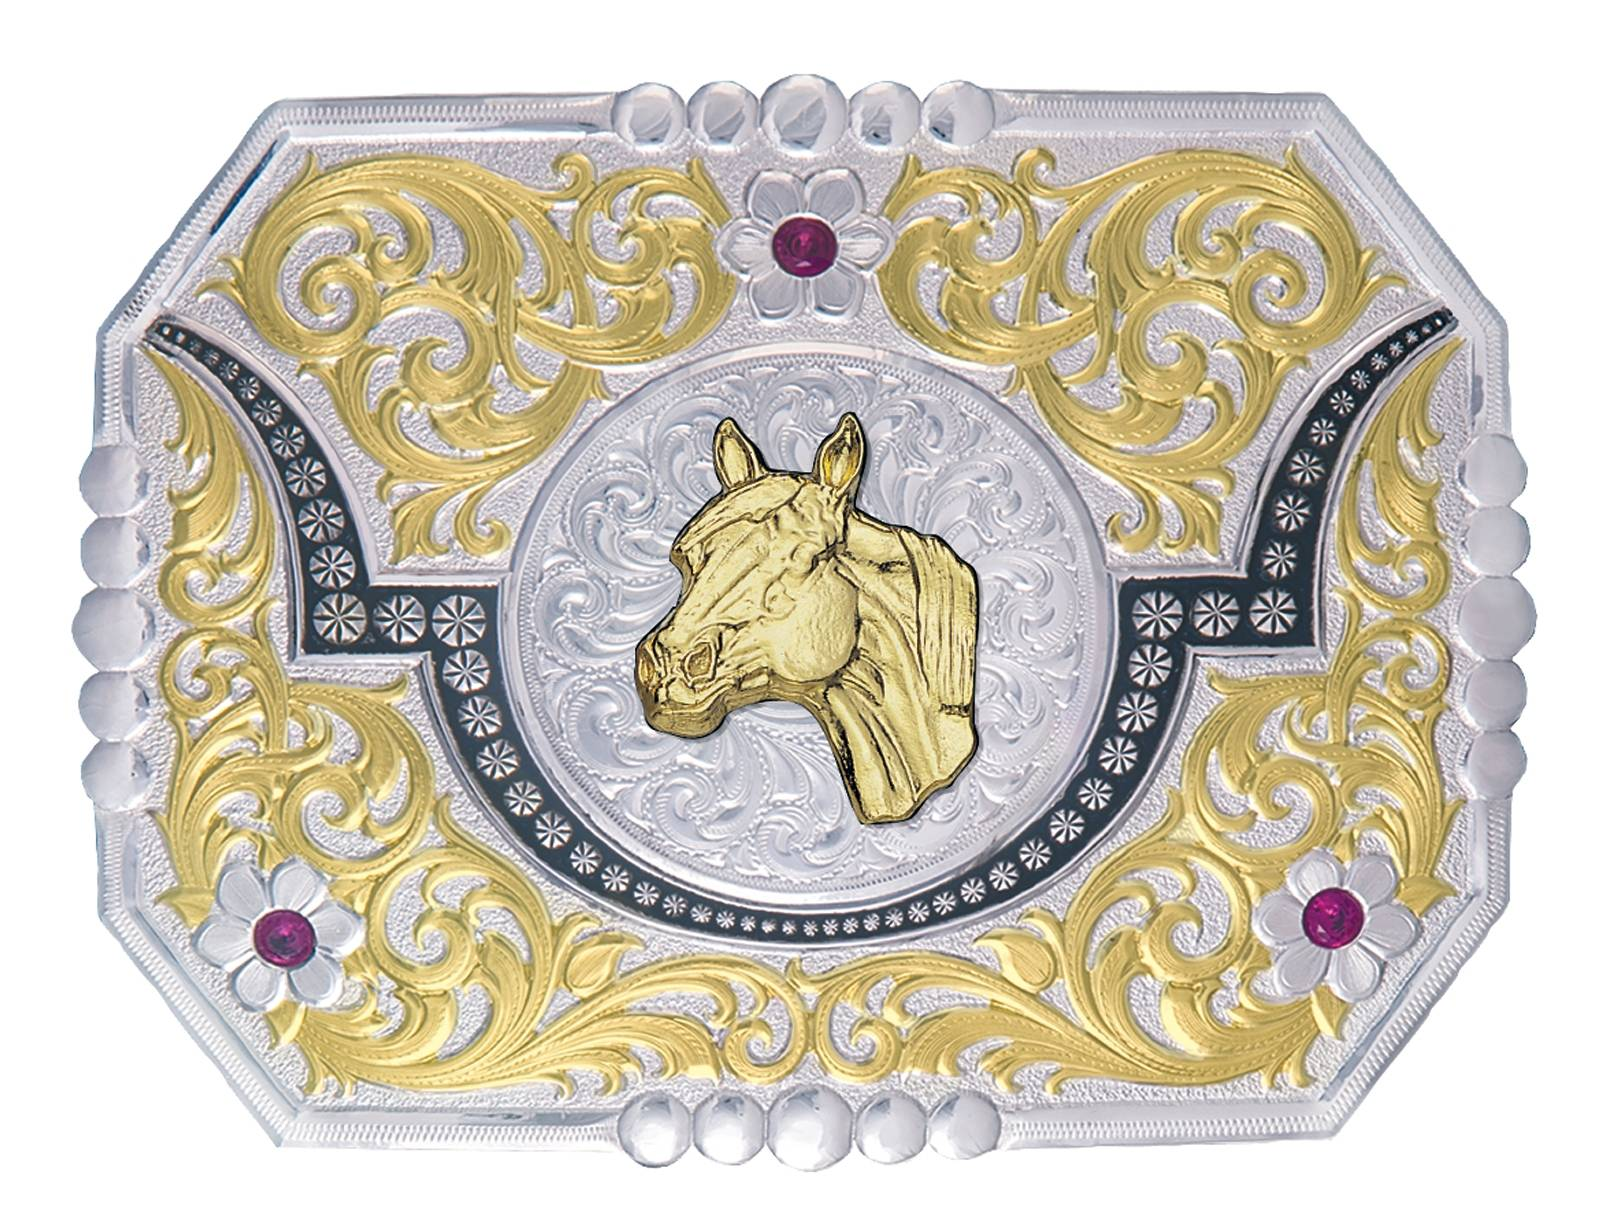 Montana Silversmiths Silver and Gold Longhorn Moon Belt Buckle with Horse Head